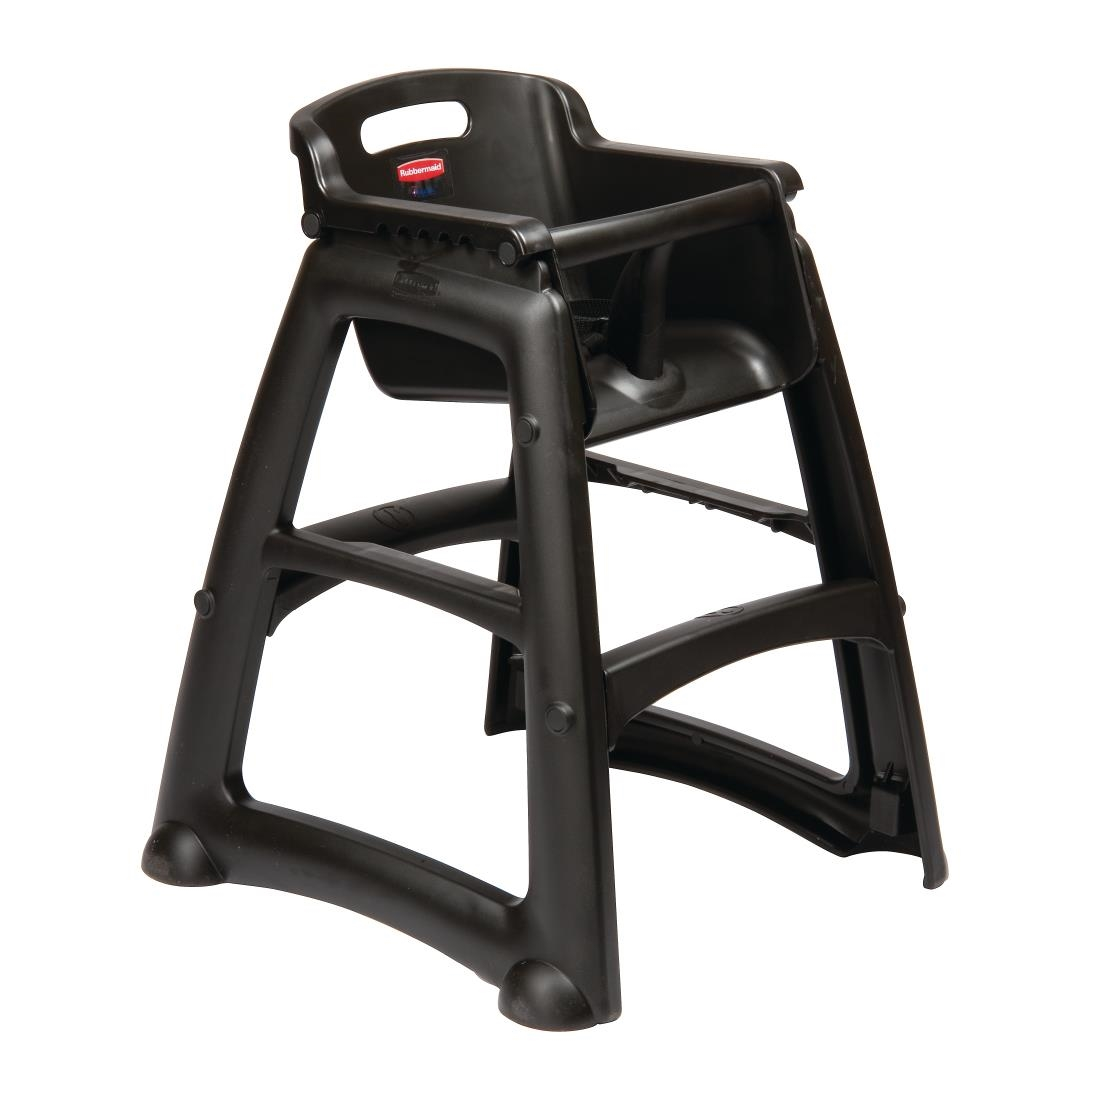 Rubbermaid High Chair - Black